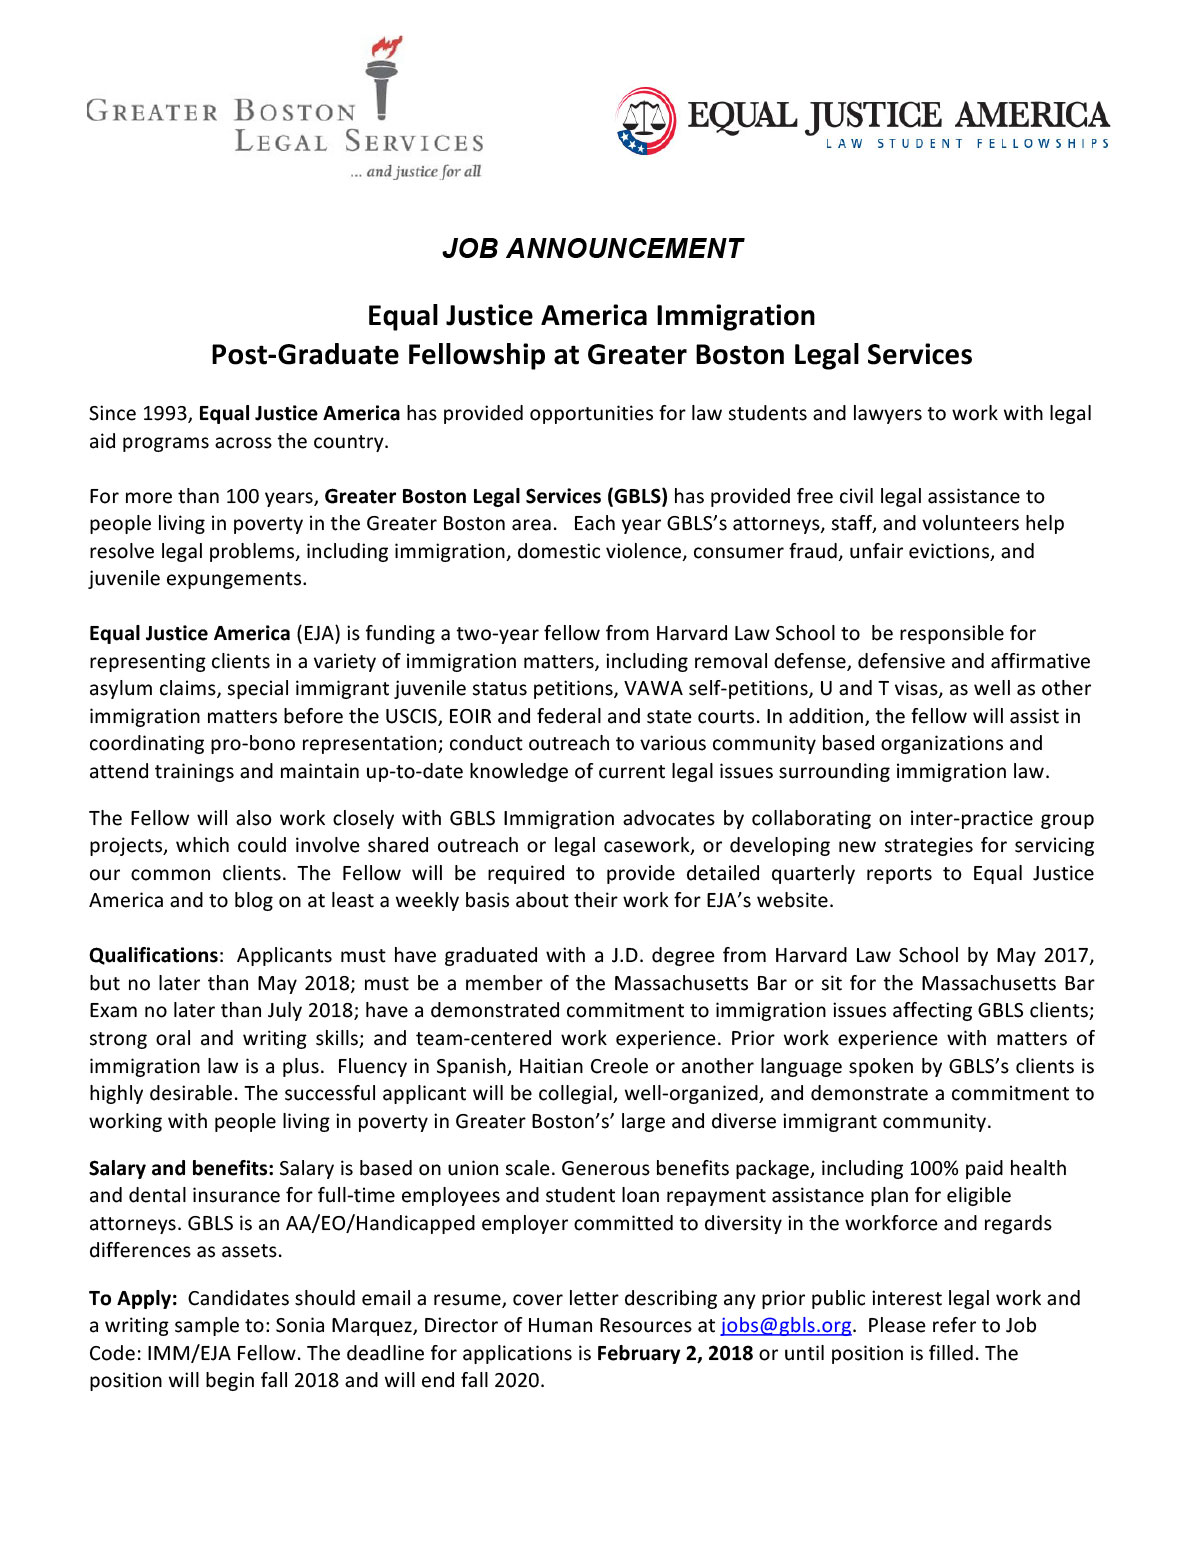 Equal Justice America Immigration  Post-Graduate Fellowship at Greater Boston Legal Services